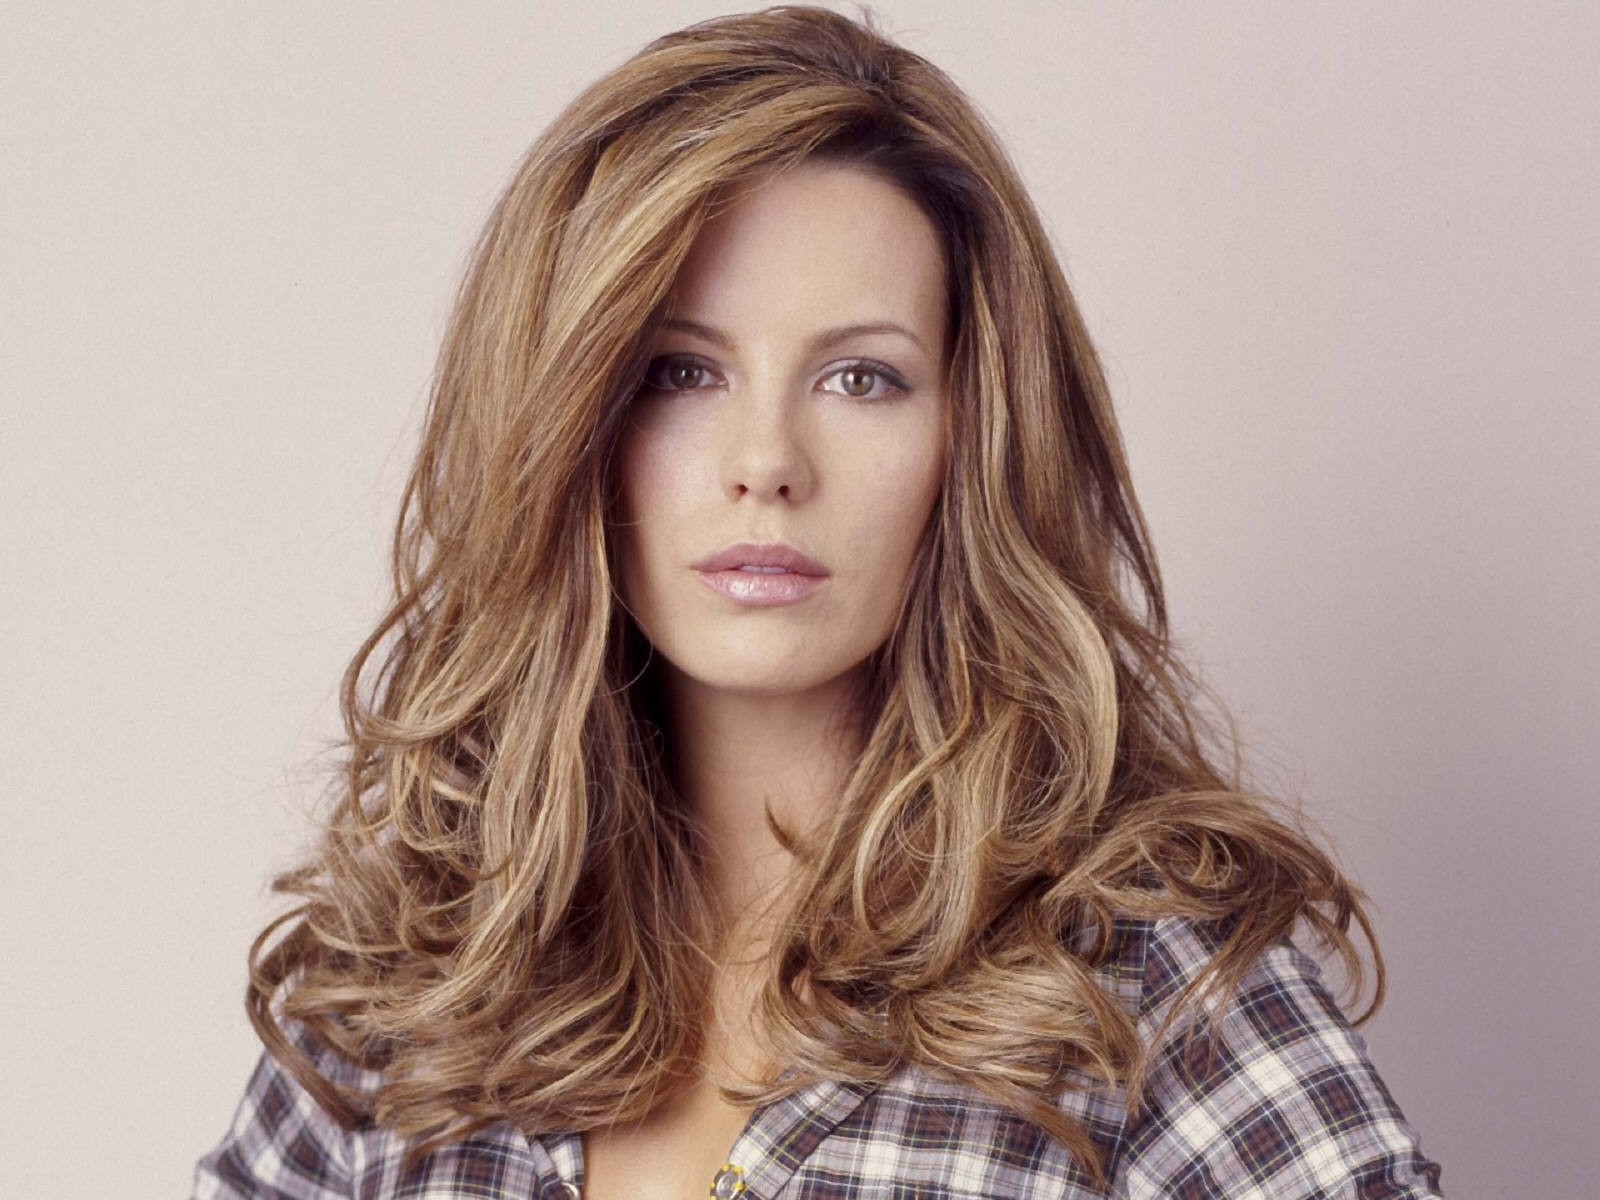 Wallpaper di Kate Beckinsale - 32